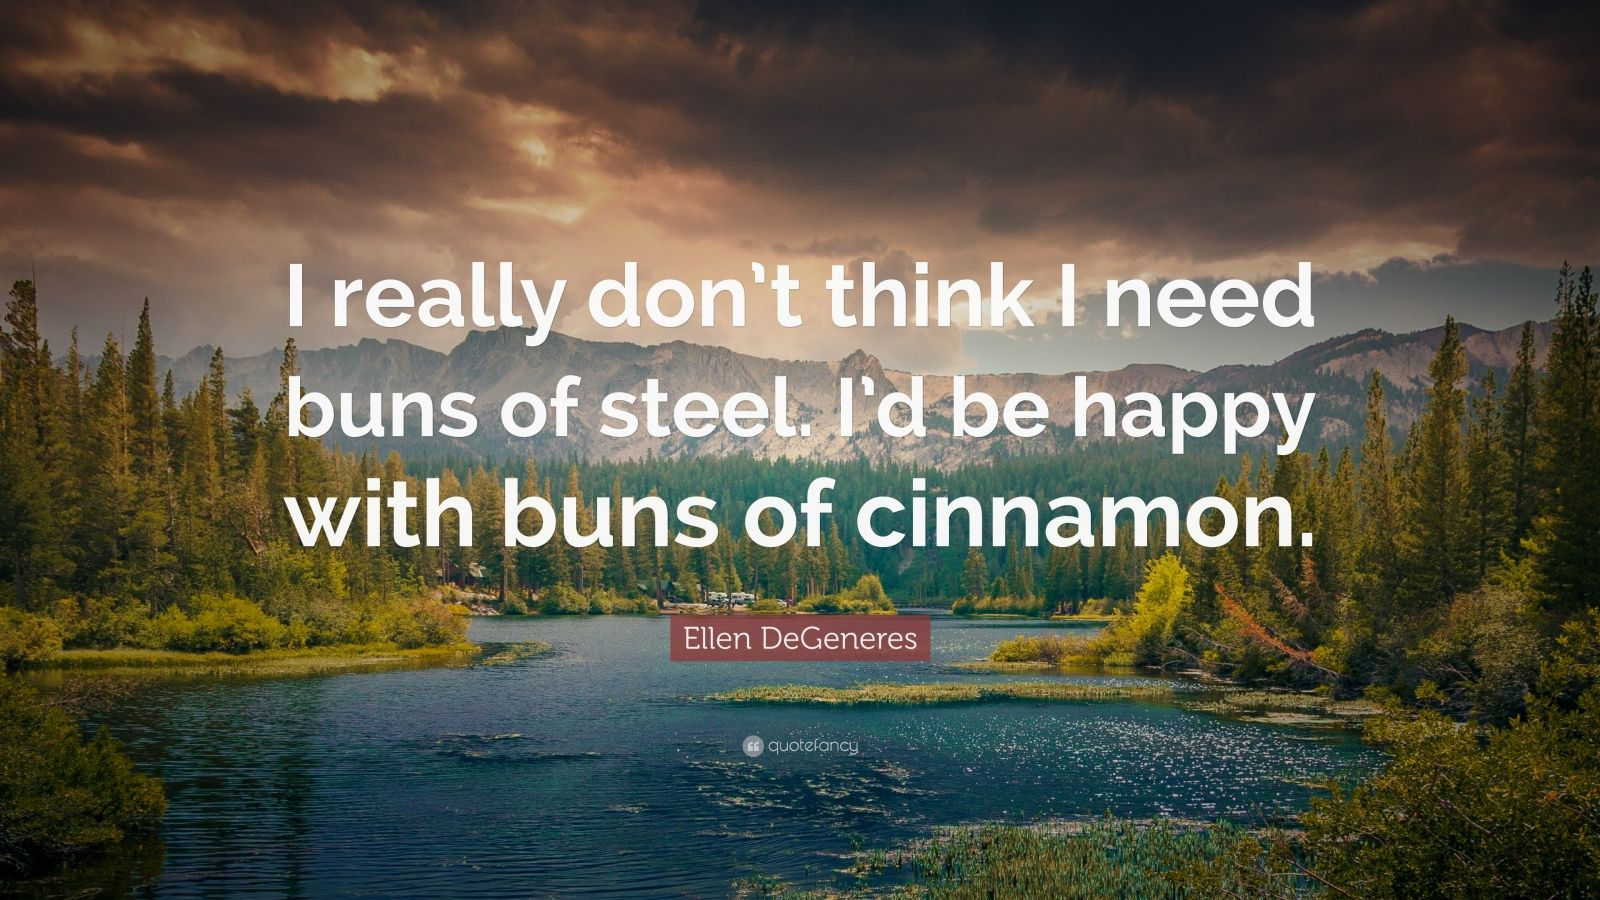 """Ellen DeGeneres Quote: """"I really don't think I need buns of steel. I'd be happy with buns of cinnamon."""""""